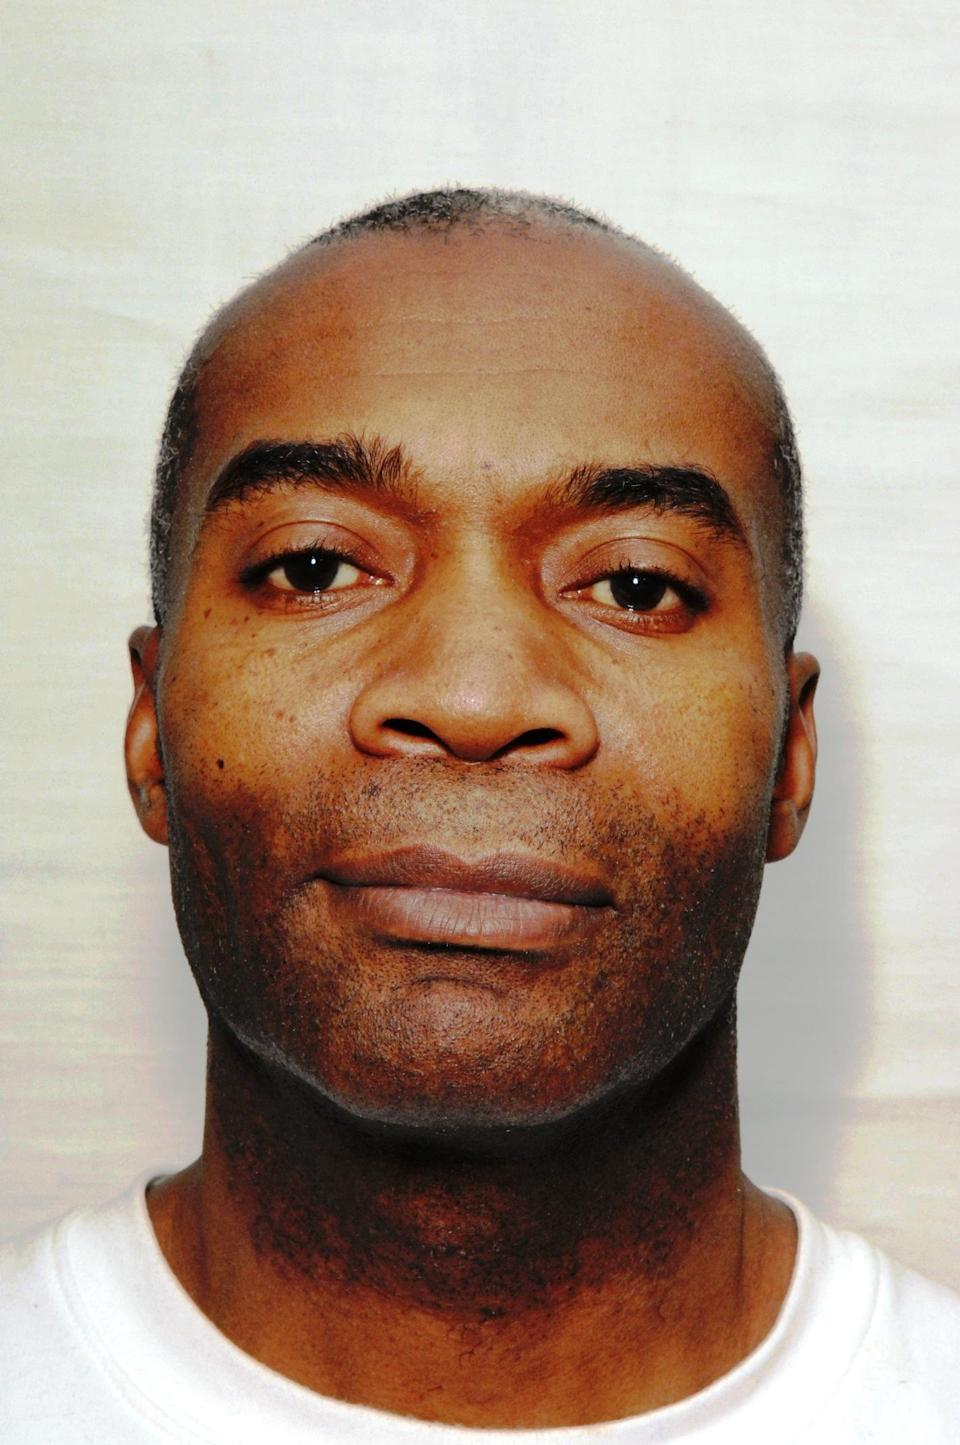 Undated Metropolitan Police handout photo of Night Stalker Delroy Grant who has been convicted of being one of the most prolific and depraved sex attackers in British history.